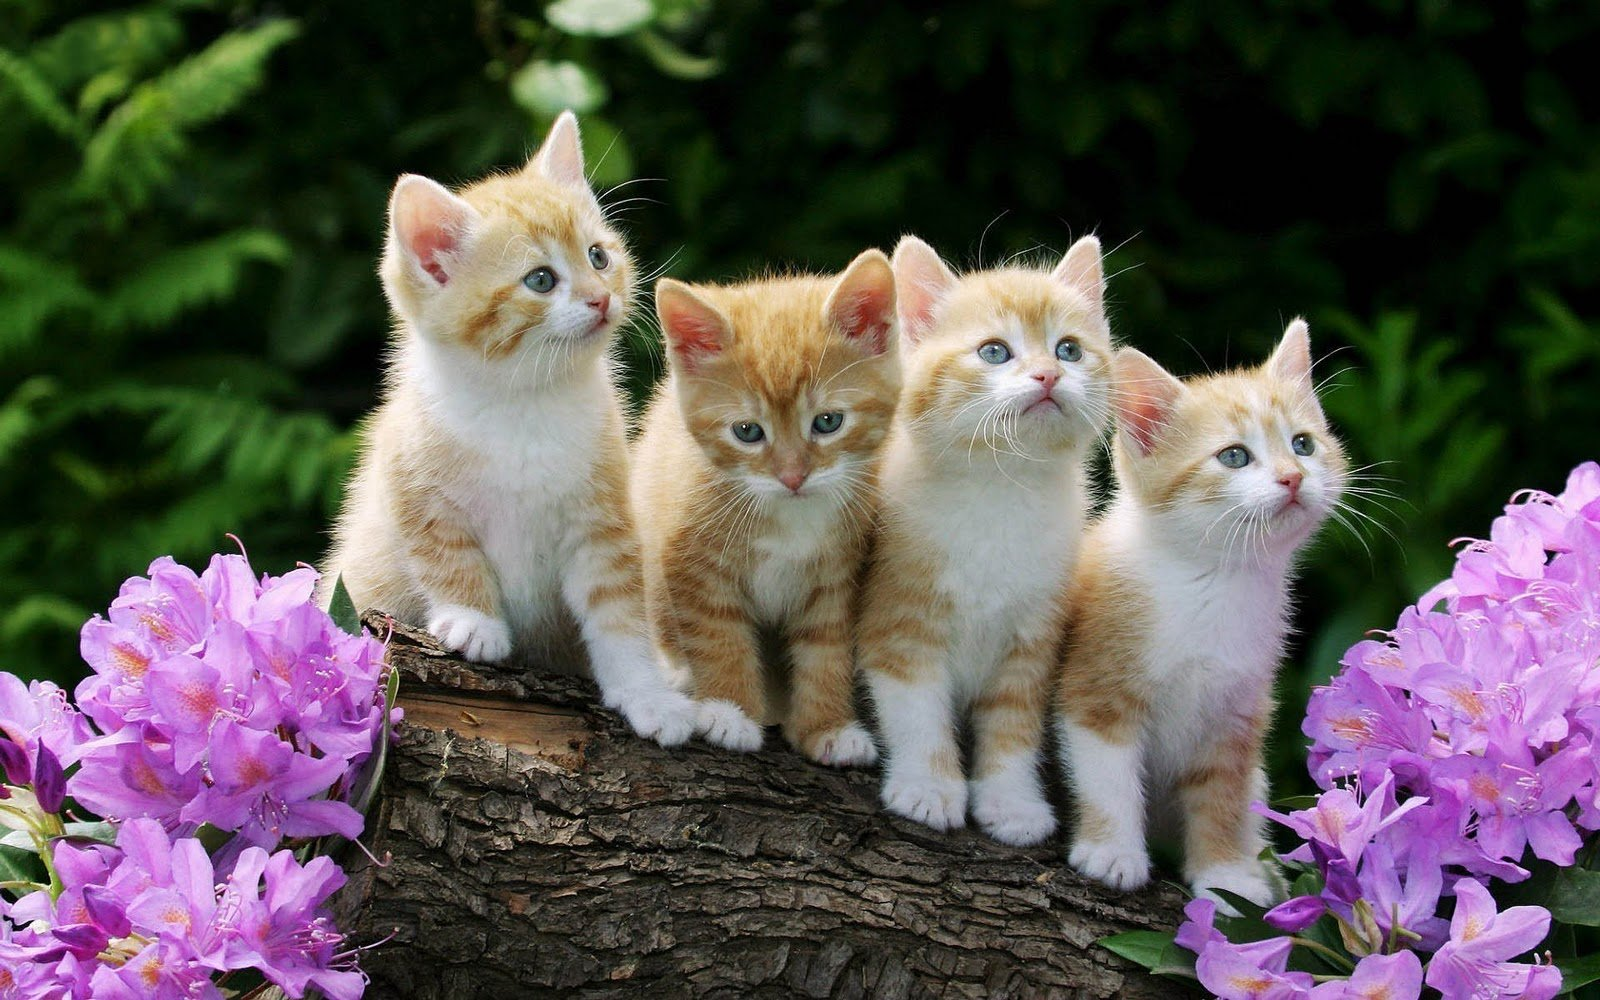 Kitten wallpaper for desktop wallpapersafari - Kitten wallpaper hd ...